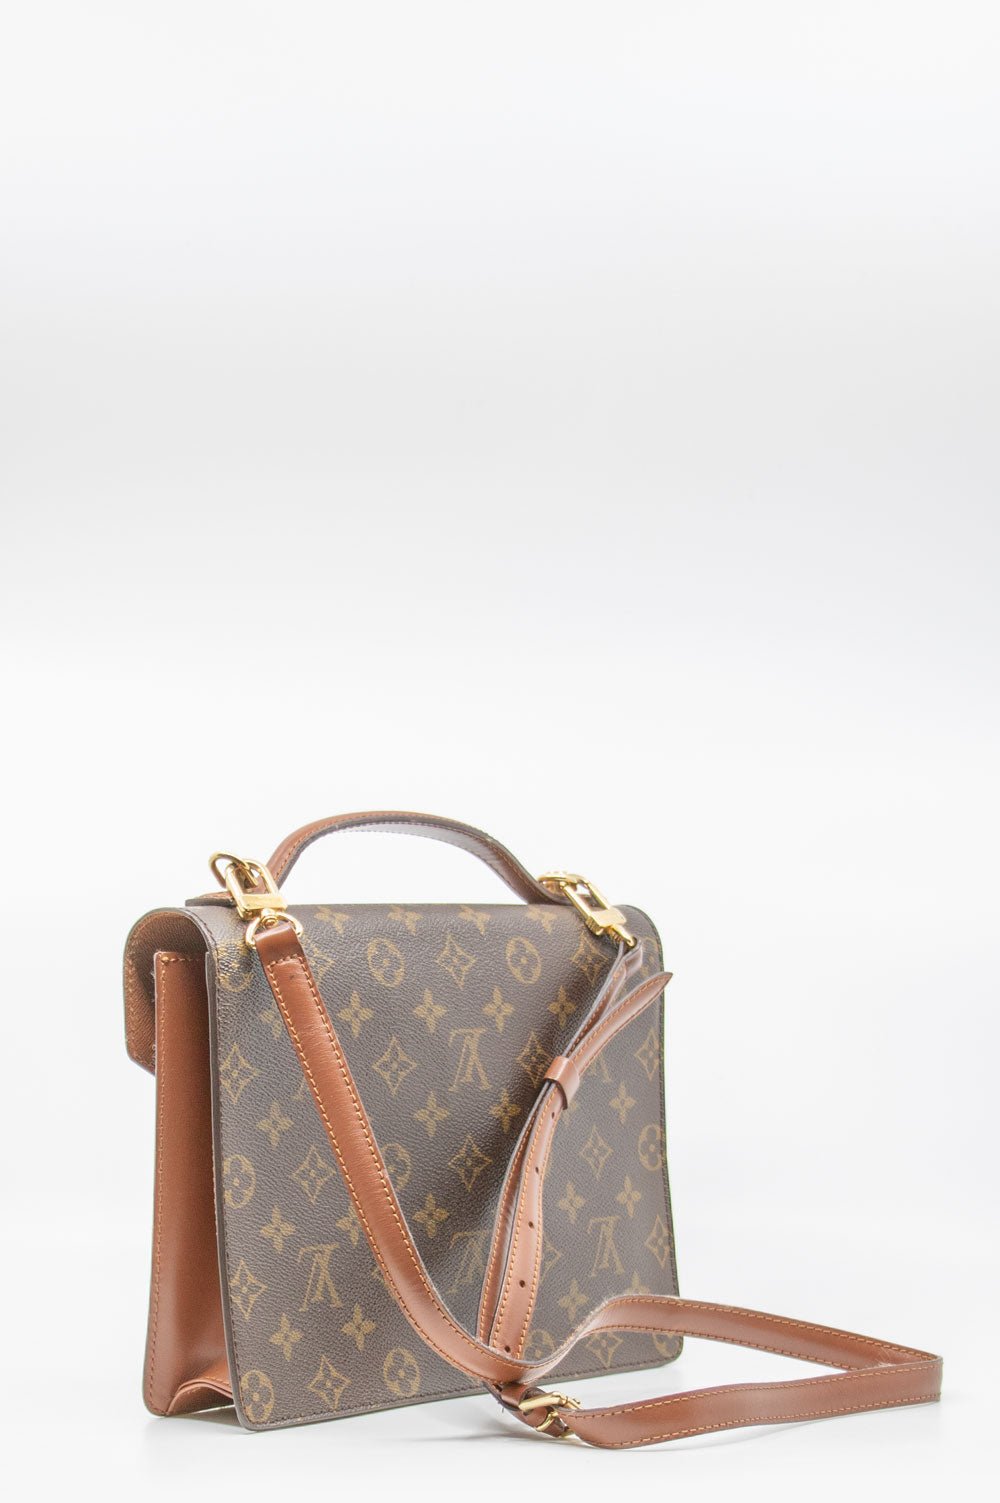 LOUIS VUITTON Vintage Monceau 26 Bag